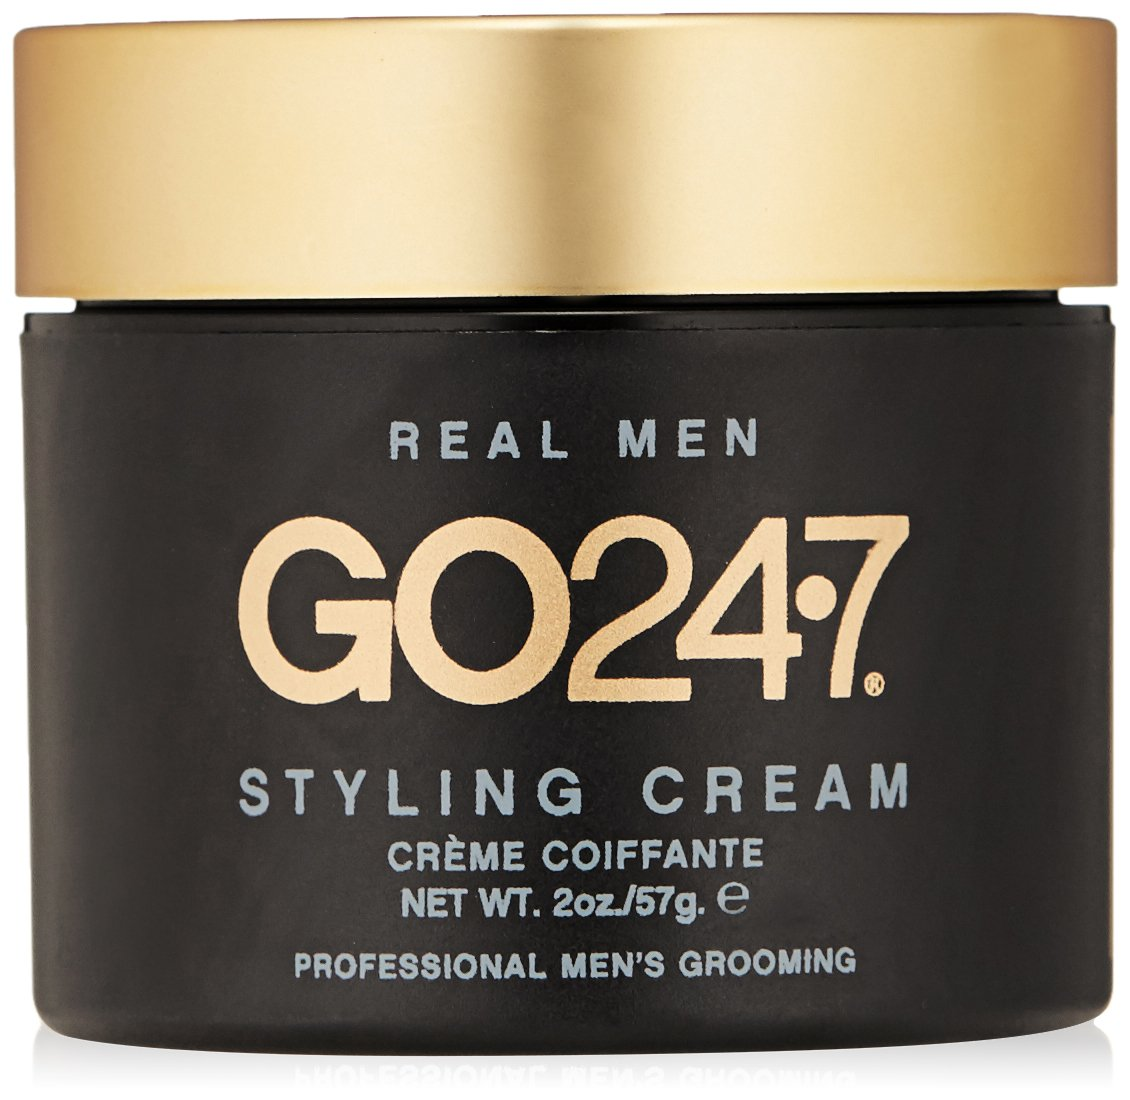 GO247 Real Men Styling Cream, 2 Oz by GO247